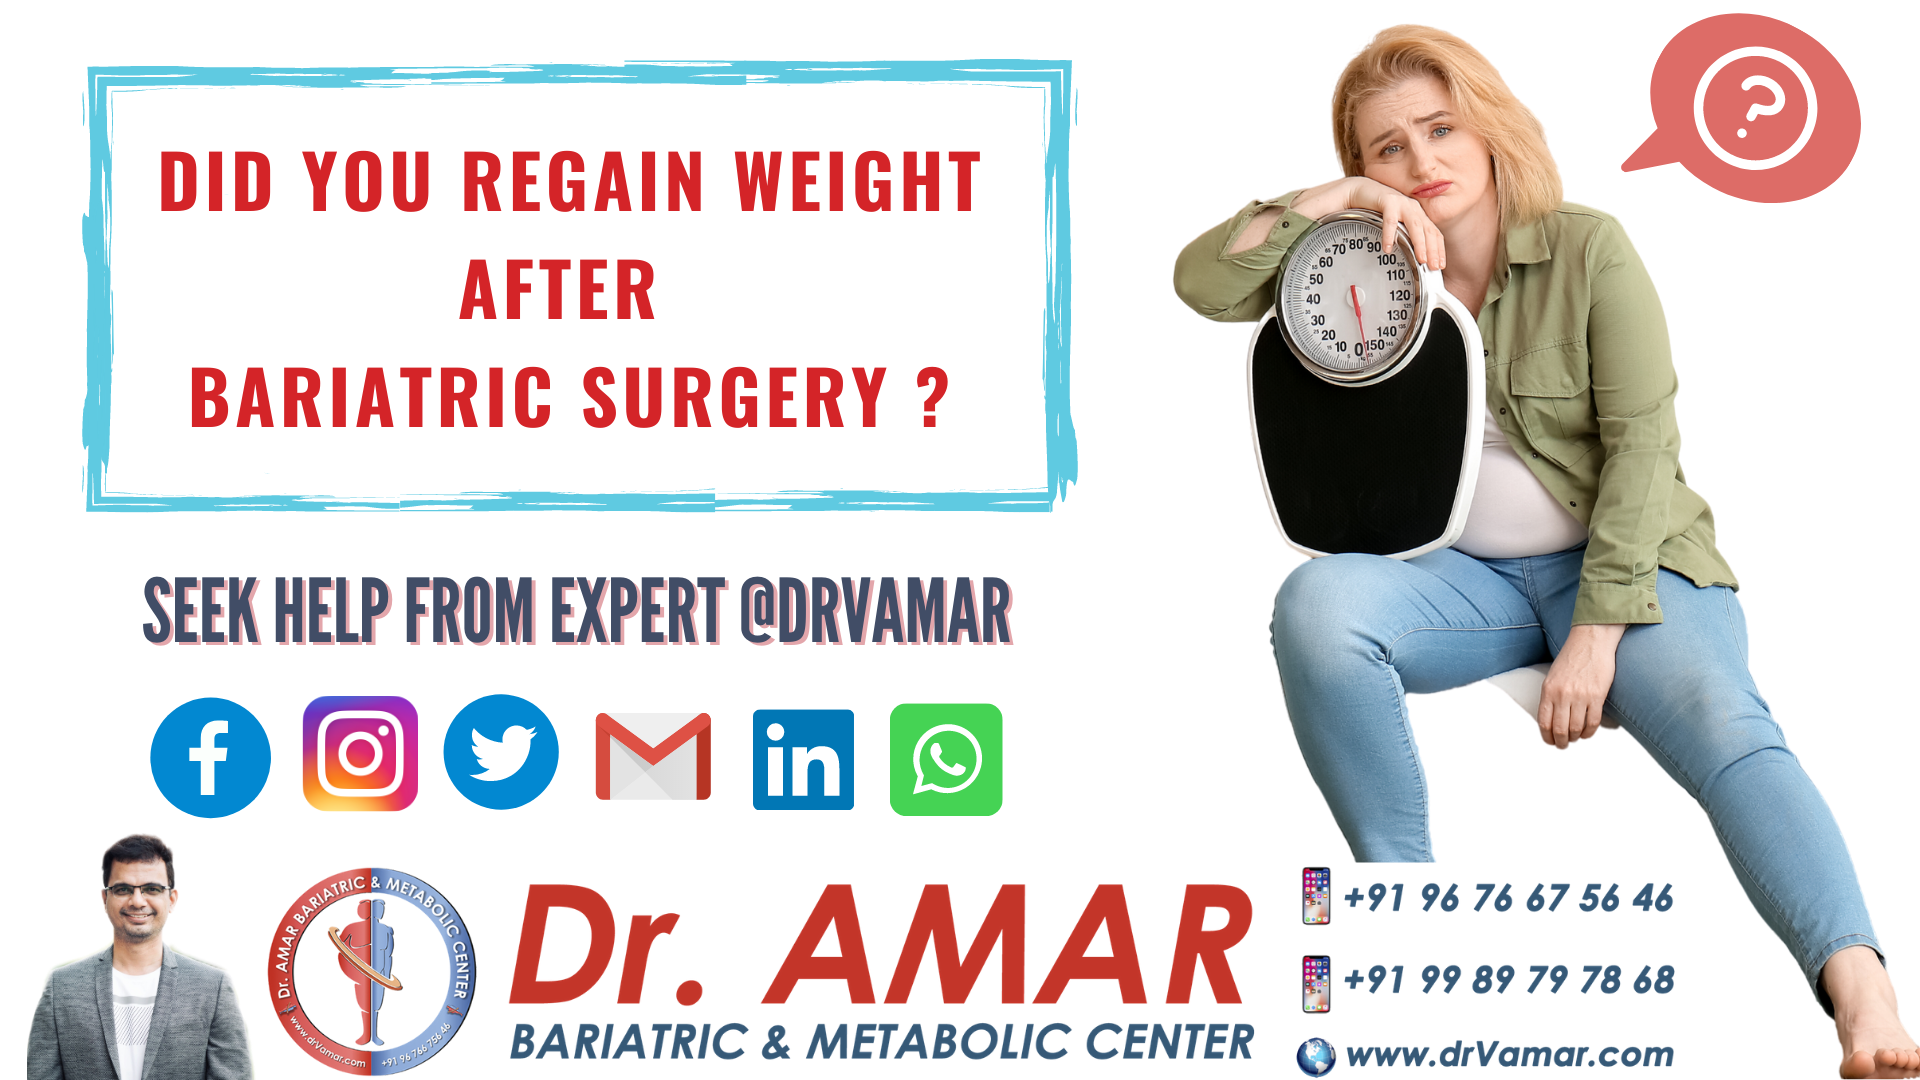 Did you regain weight after bariatric surgery?